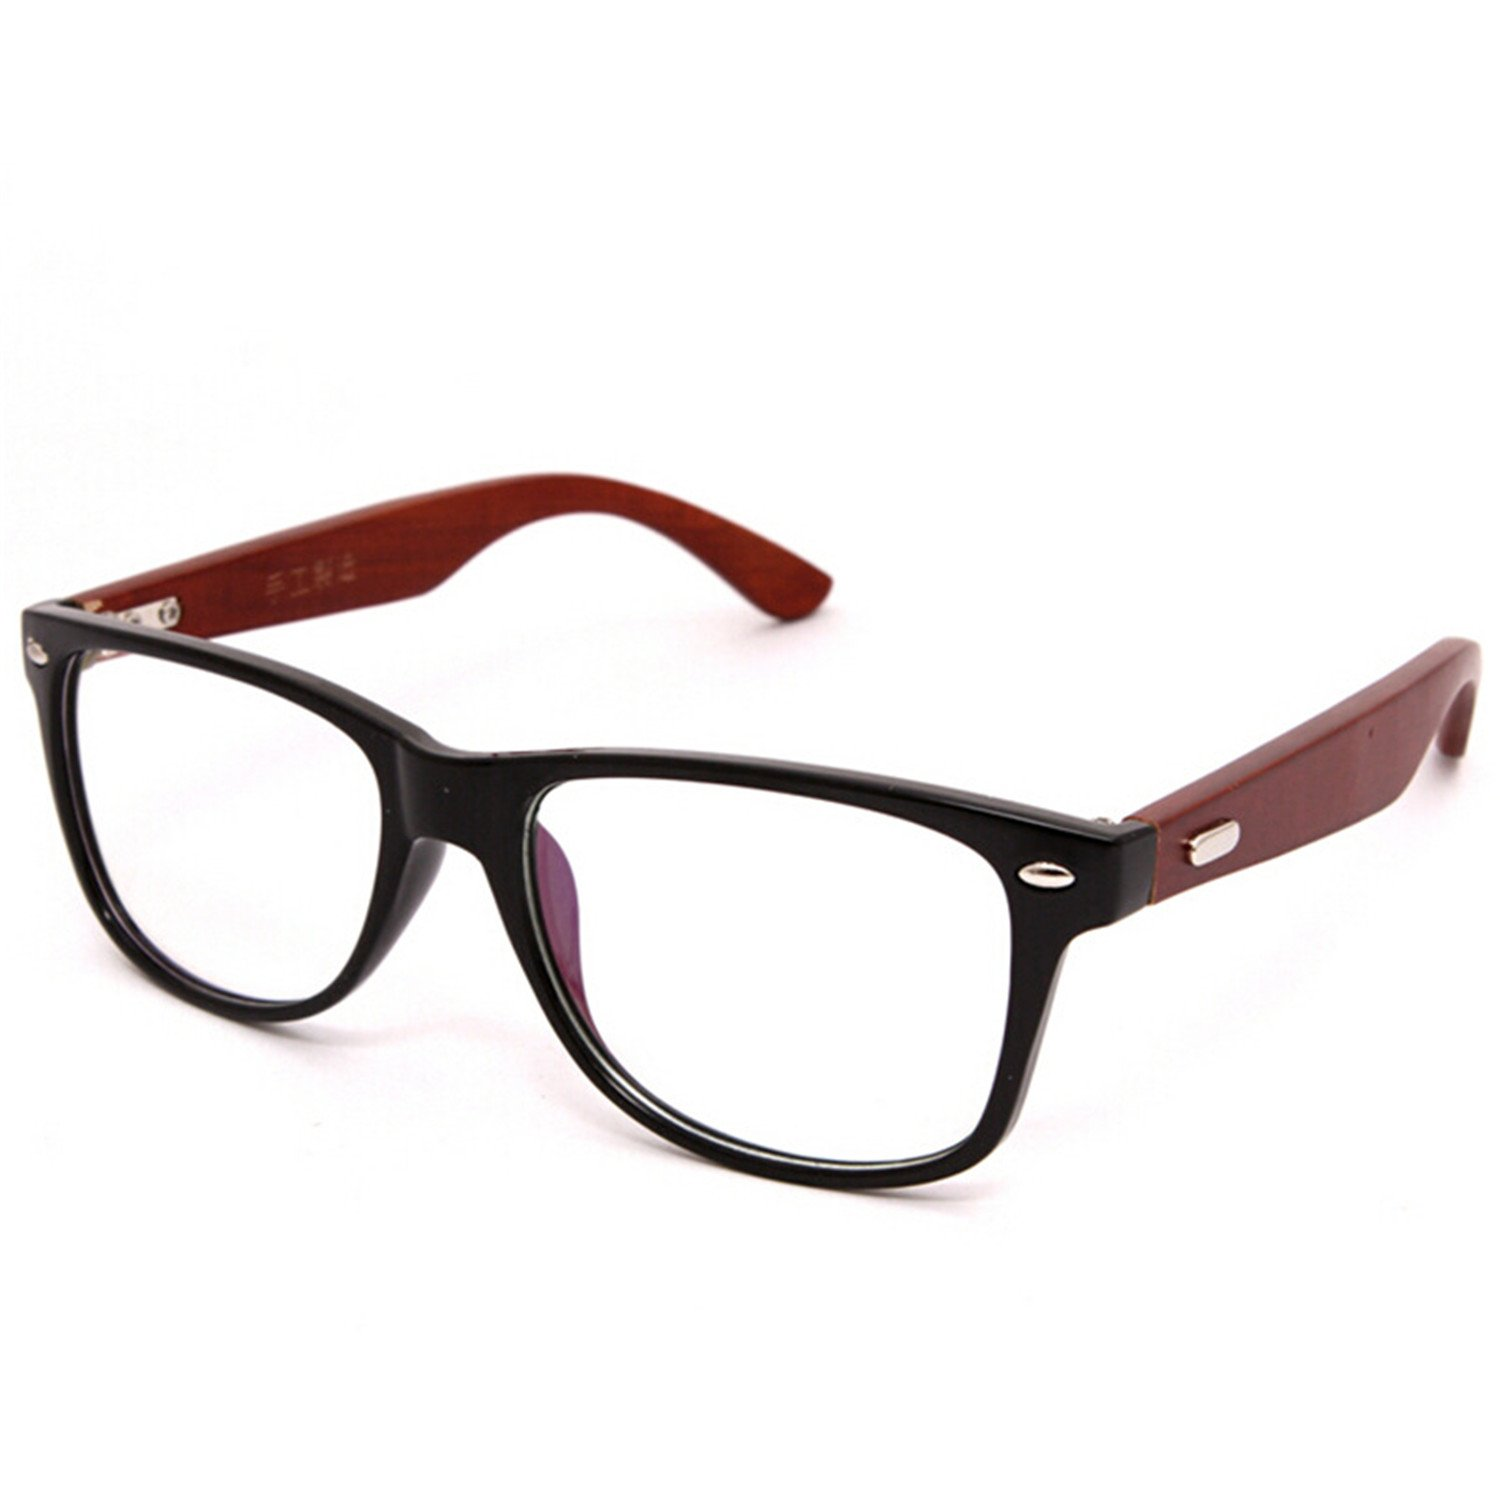 7c94ba83f8 Amazon.com  Surprising Day New High Grade Fashion Women And Men s Wooden  Glasses Frame Natural Wood Bamboo Eyeglasses Frames Vintage Spectacle Frames  ...